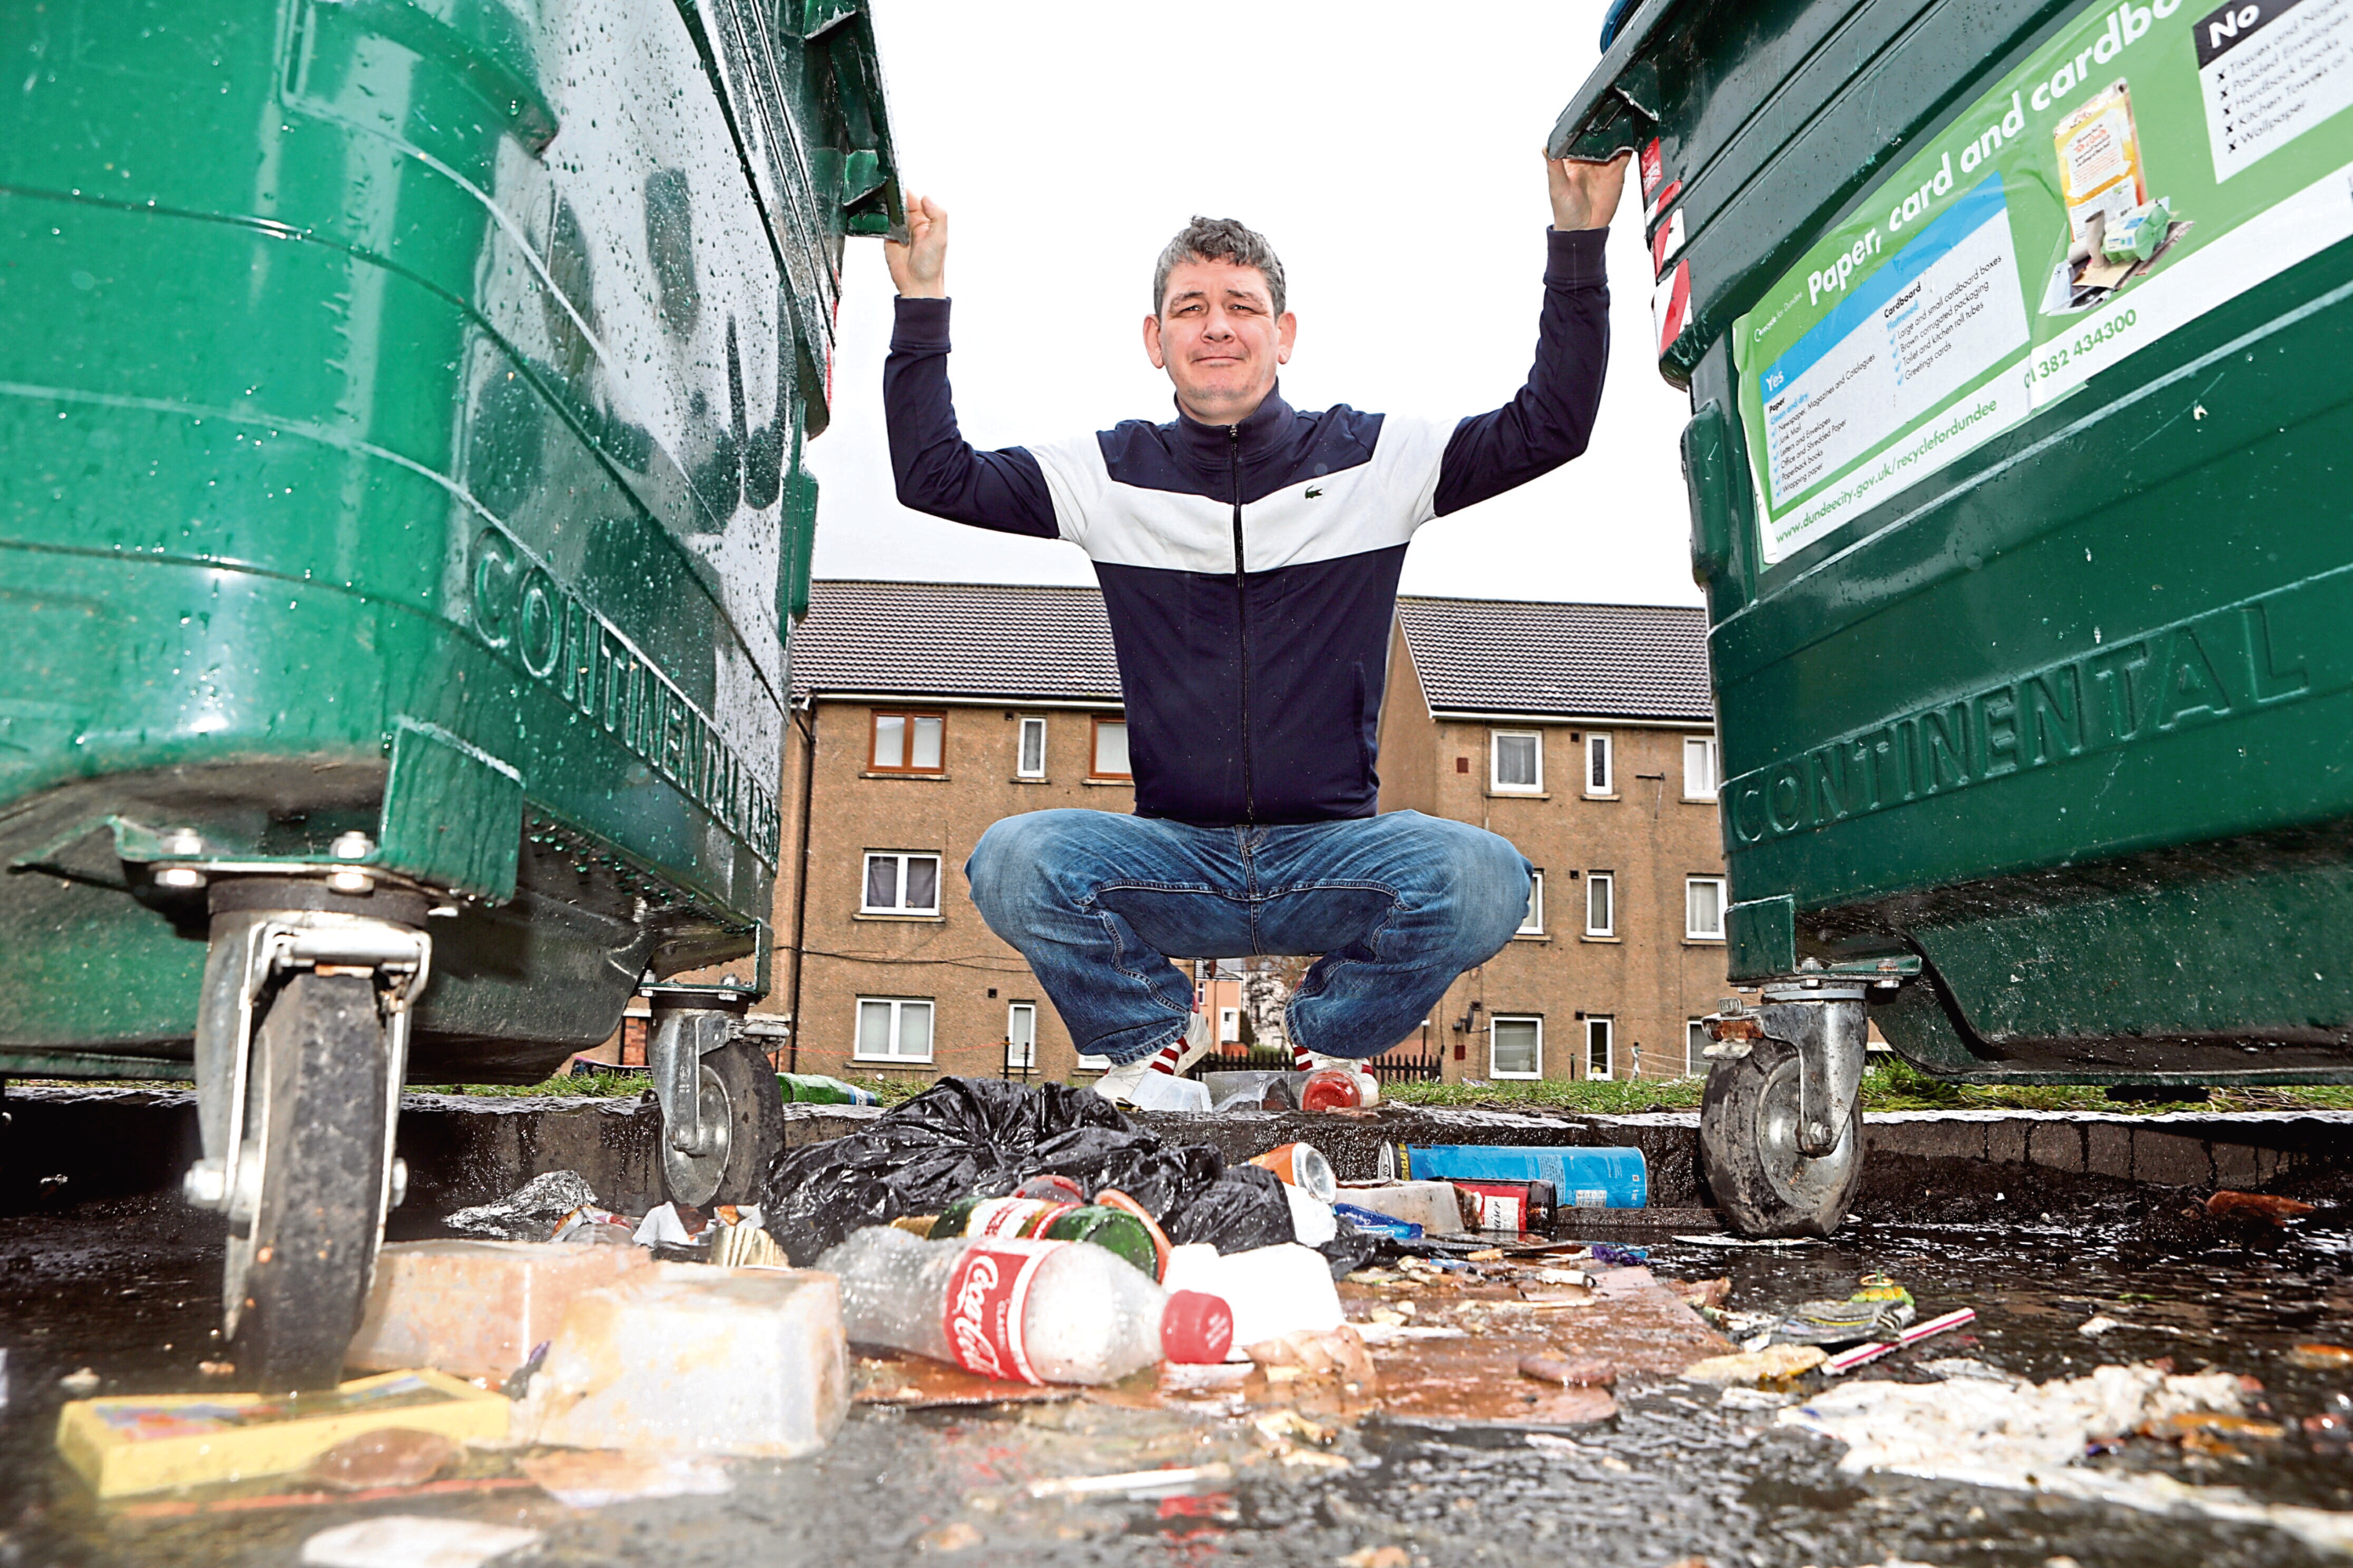 Loganlee Terrace resident Dabid Marr beside the Eurobins in the street